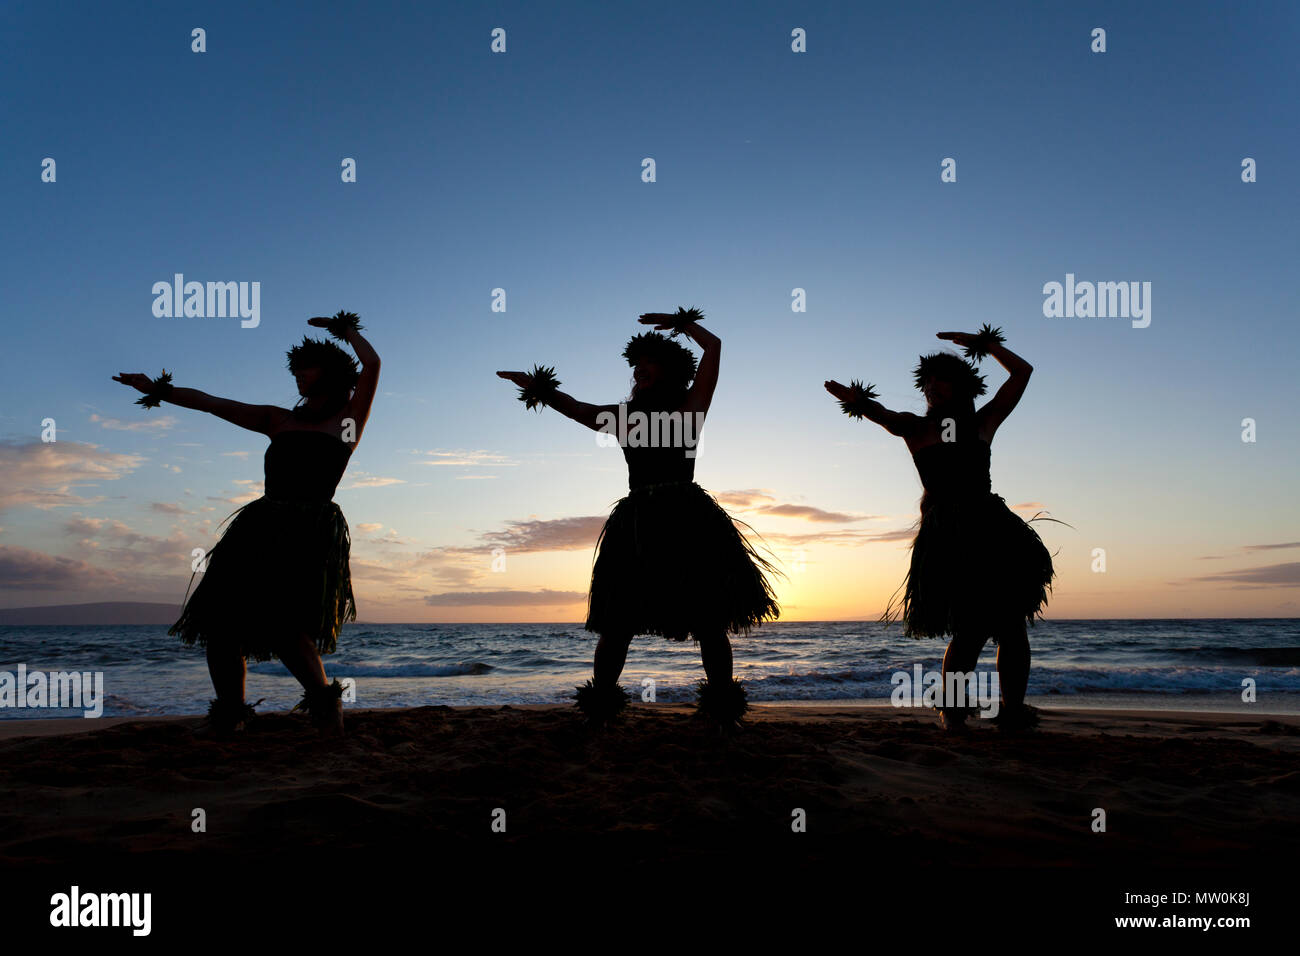 Three hula dancers at sunset at Wailea, Maui, Hawaii. - Stock Image